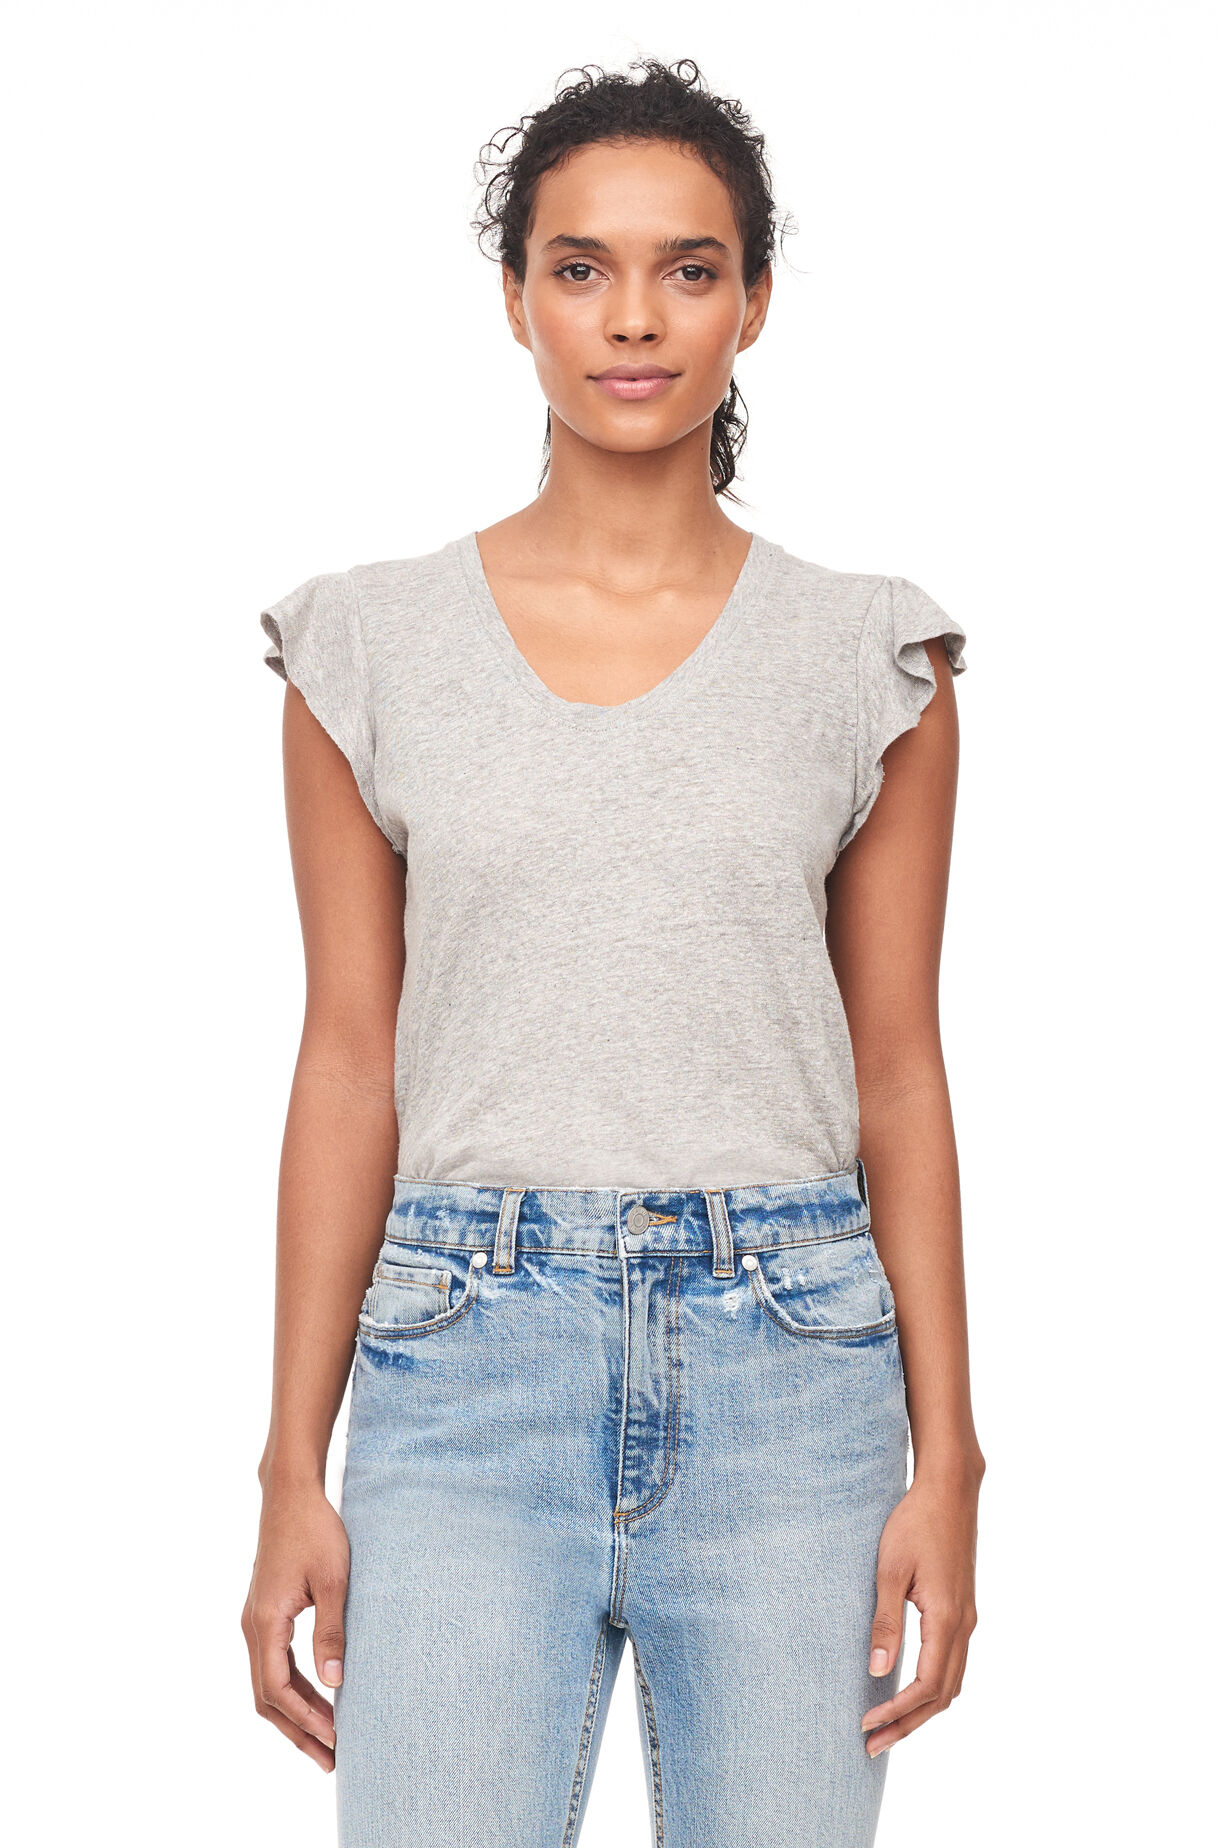 La Vie Washed Textured Jersey Tee, , large